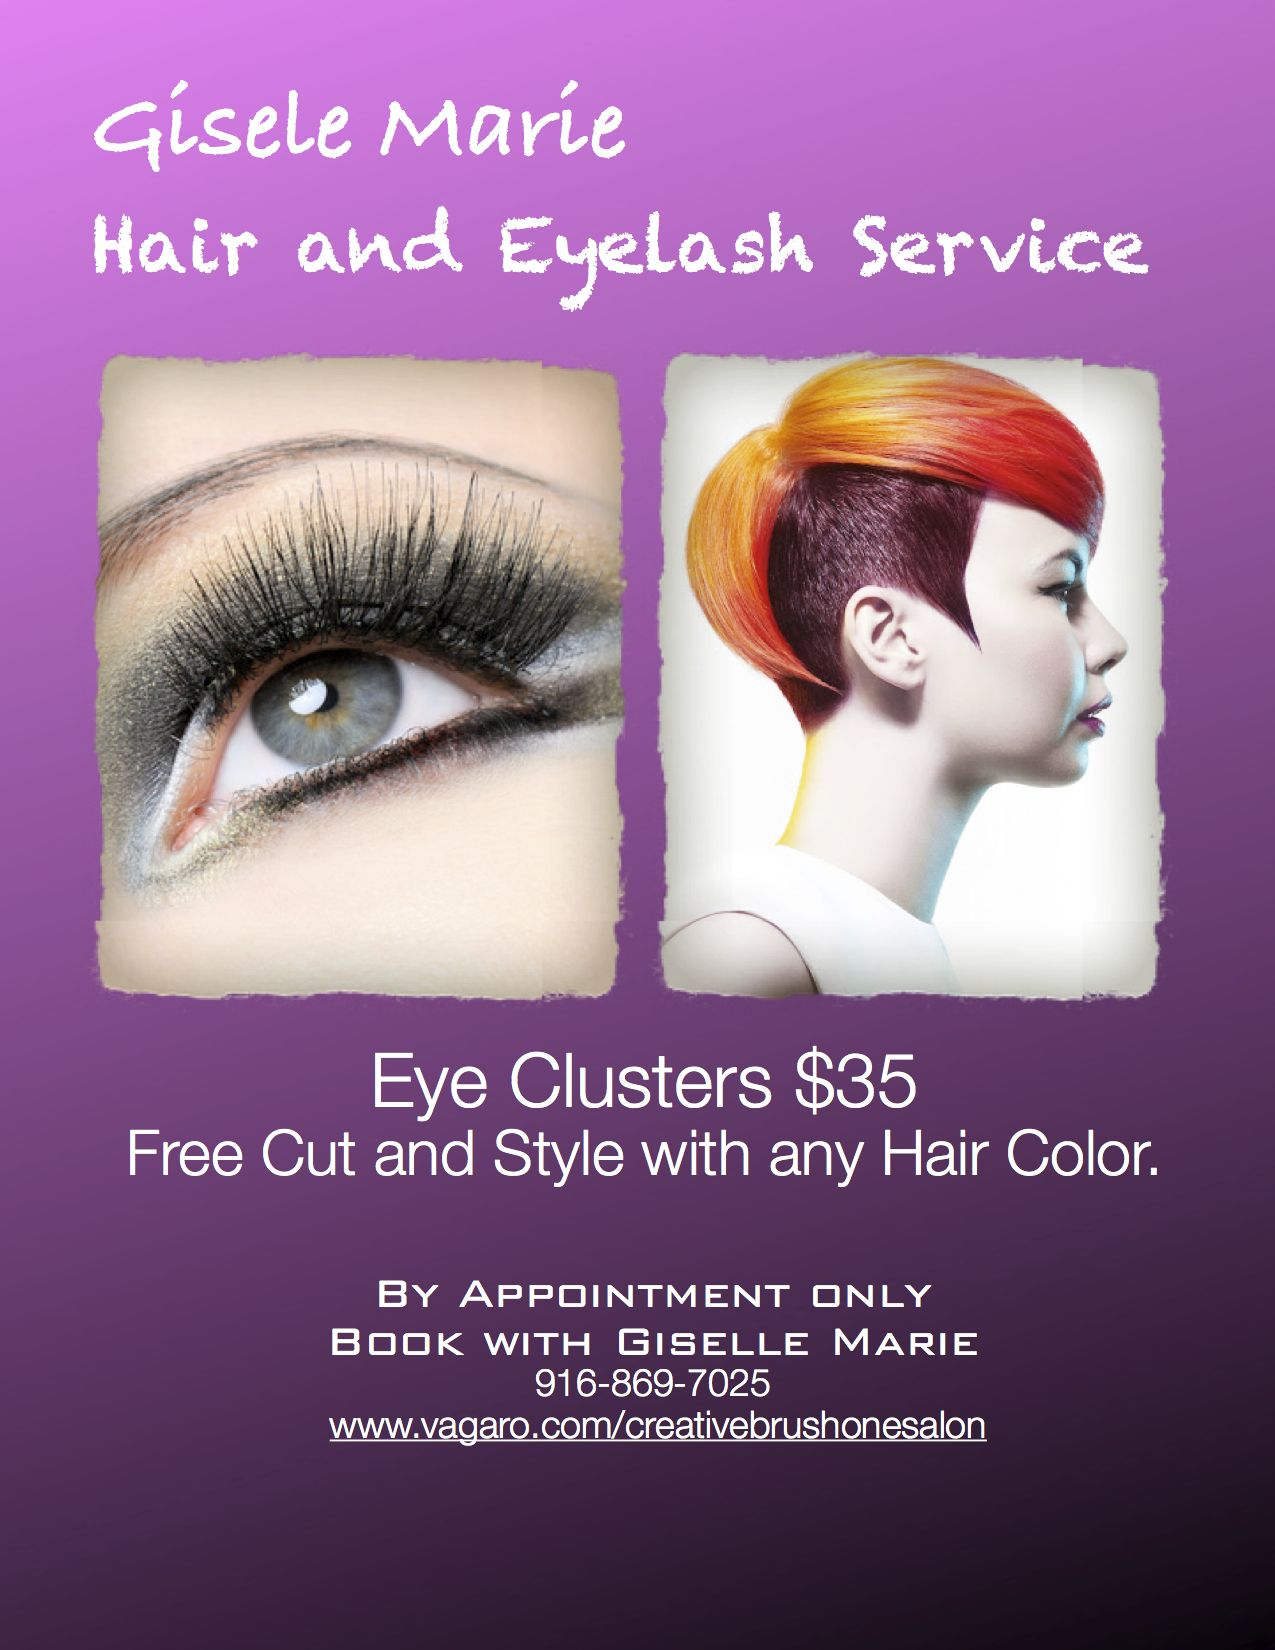 eye cluster by appointment only please see flyer for booking please see flyer for booking